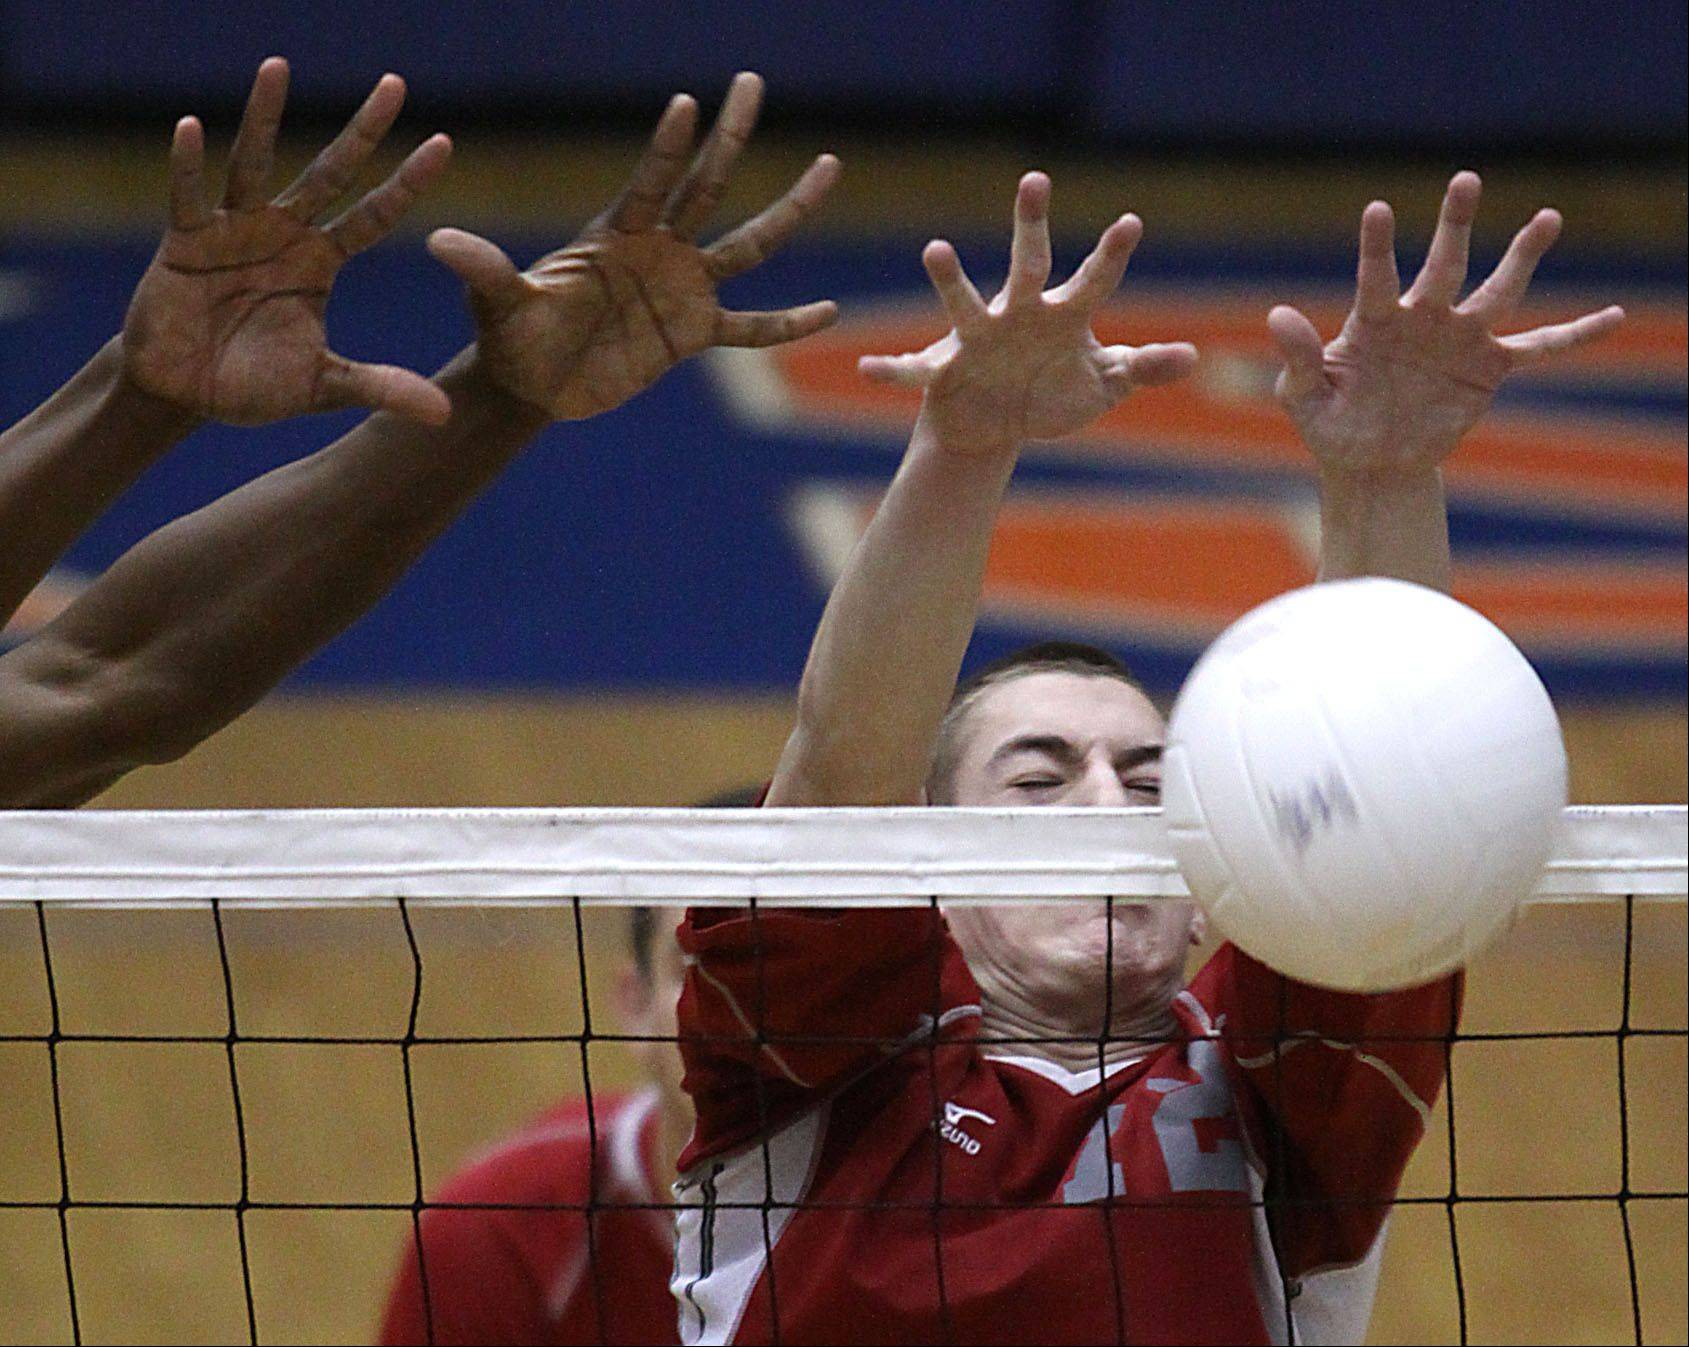 Palatine's Danny Matijevic blocks an attack during Thursday's match at Hoffman Estates.